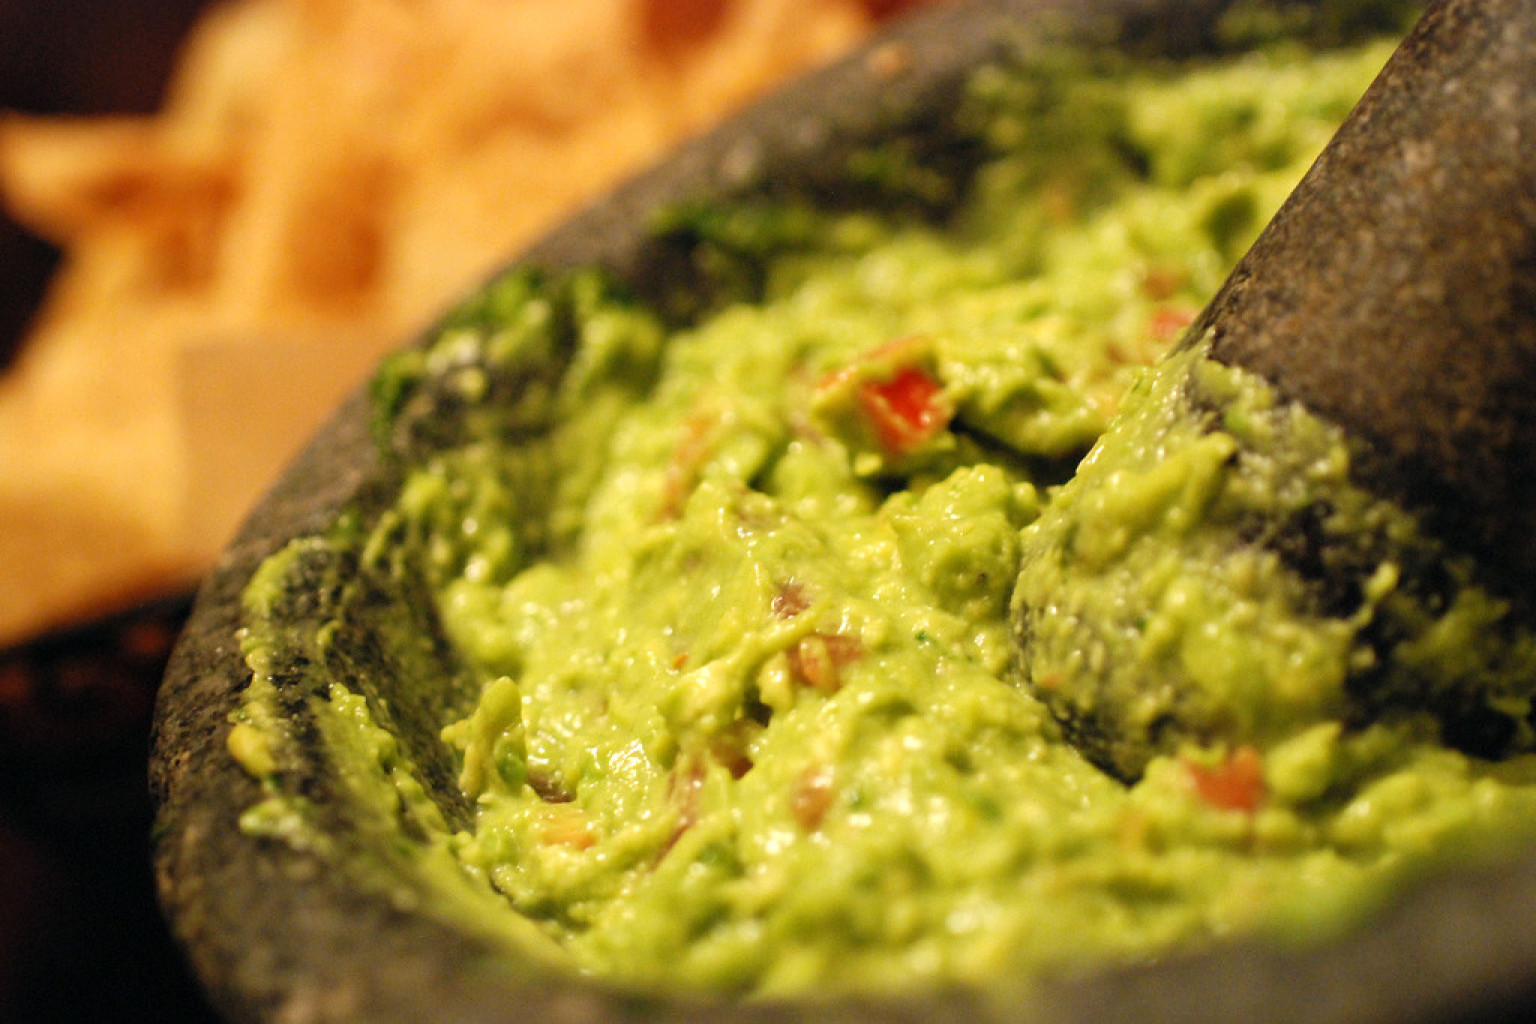 How To Make The Best Guacamole: Tips And Mistakes To Avoid | The ...